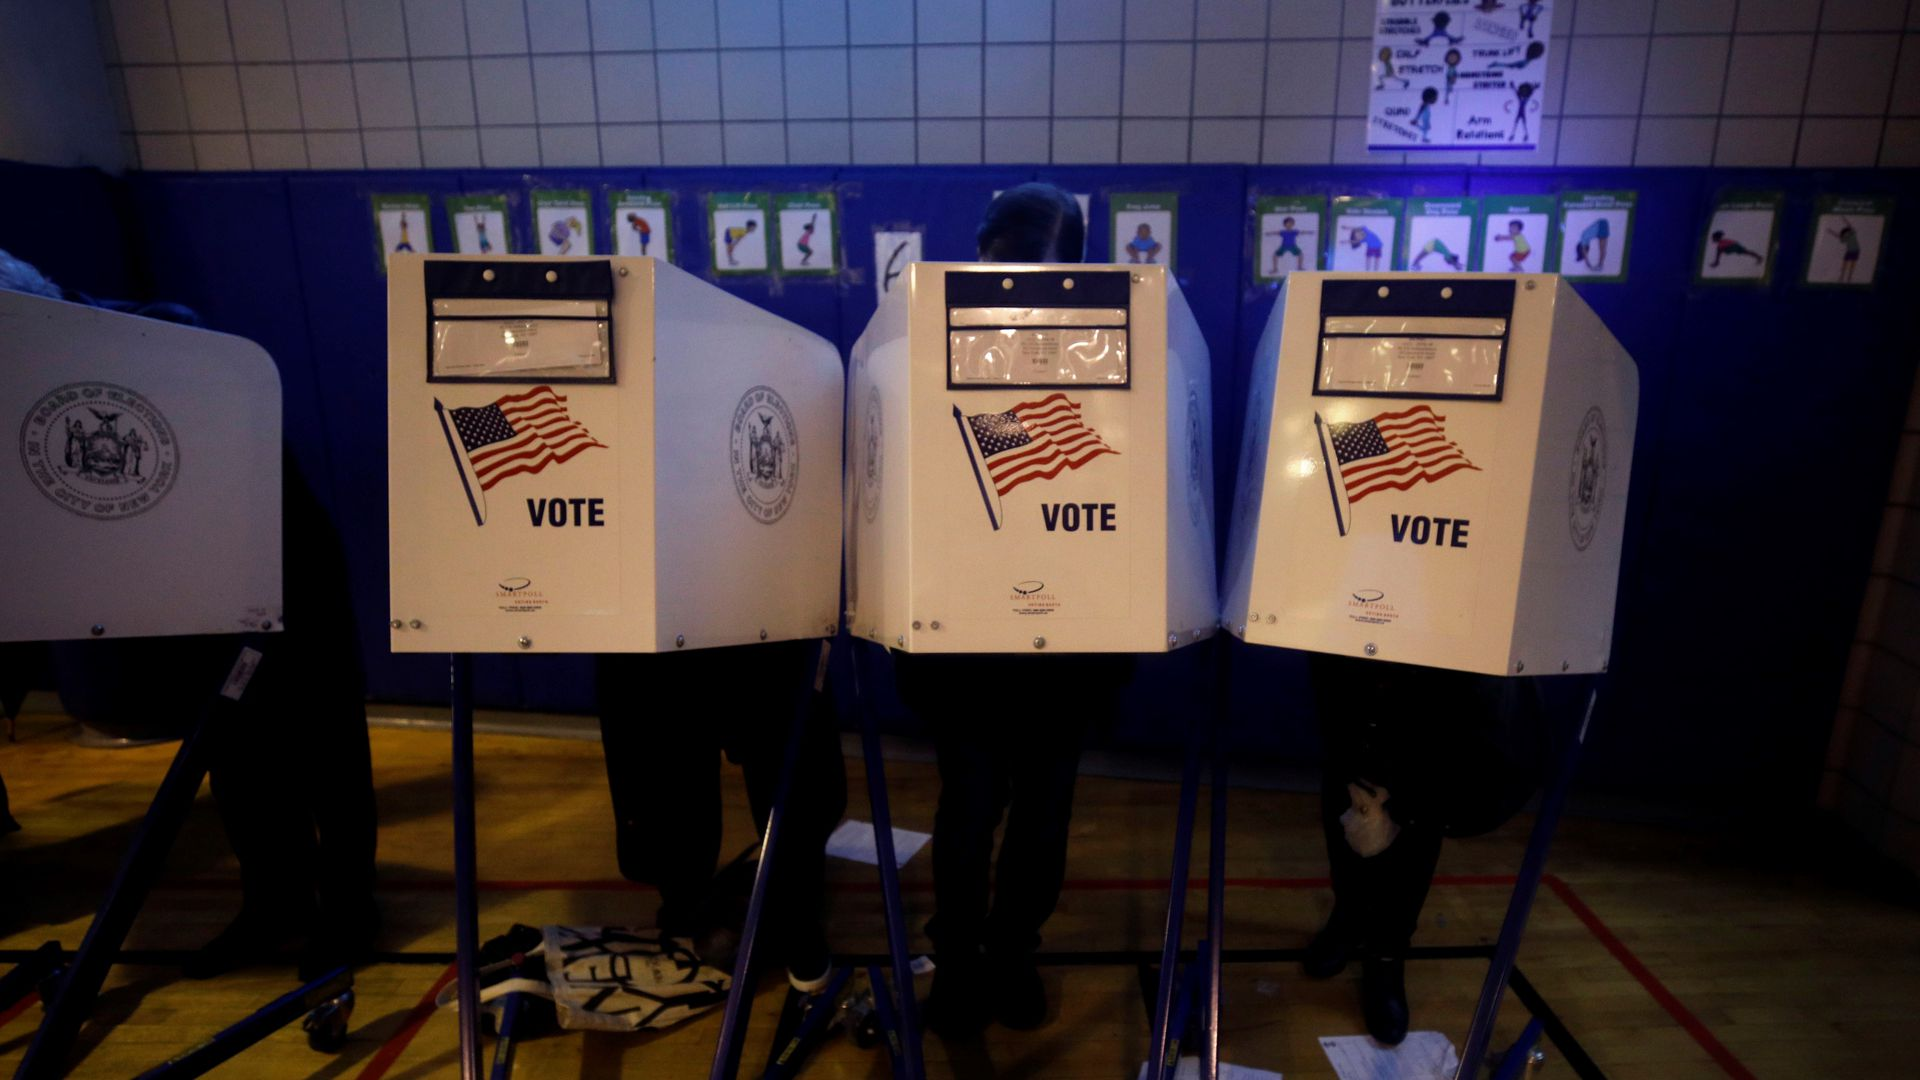 In this image, three people stand behind three different white voting booths. Each booth has an American flag on it.